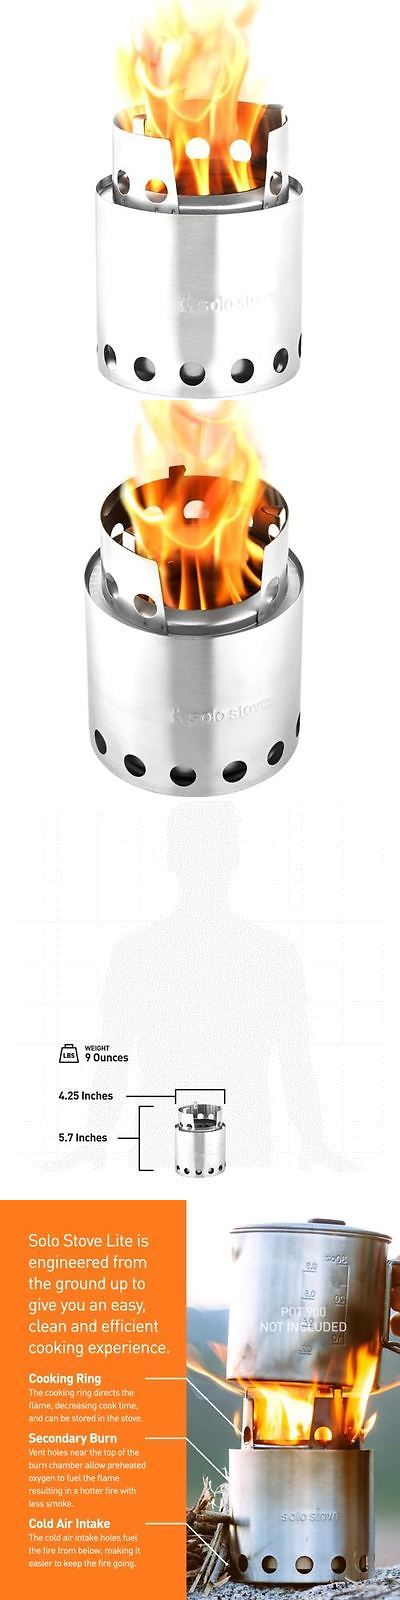 Camping Stoves 181386: Portable Compact Wood Burning Backpacking Hiking Solo Stove Outdoor Camping BUY IT NOW ONLY: $97.42